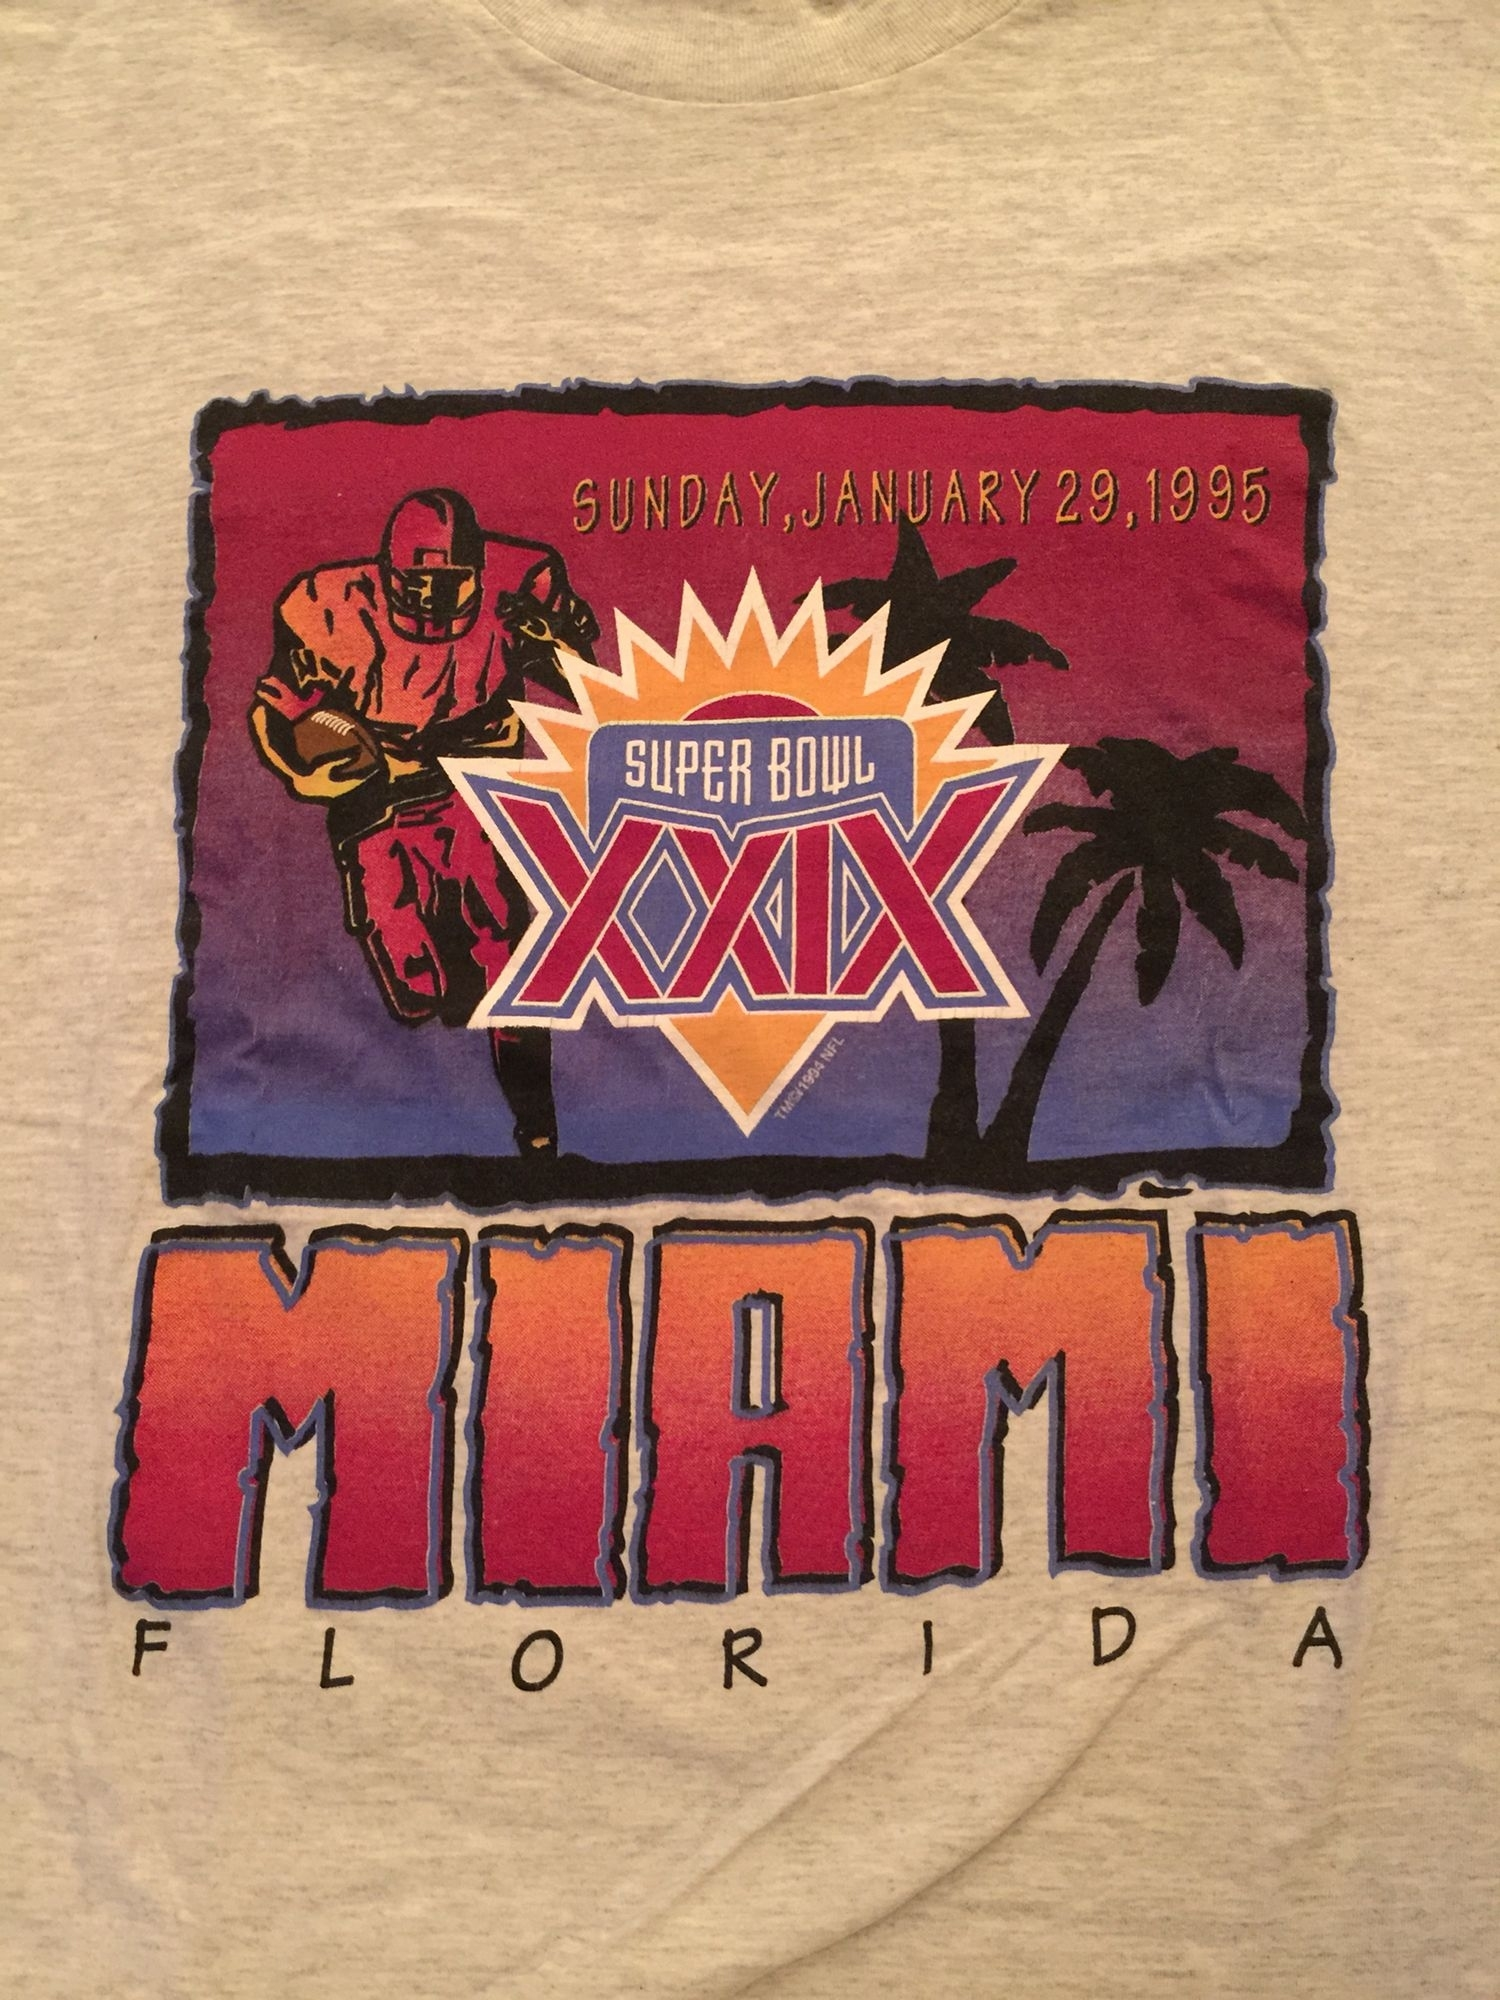 Super Bowl Xxix-Miami | Super Bowl, Special Events, Vintage with regard to Miami Super Bowl Activities